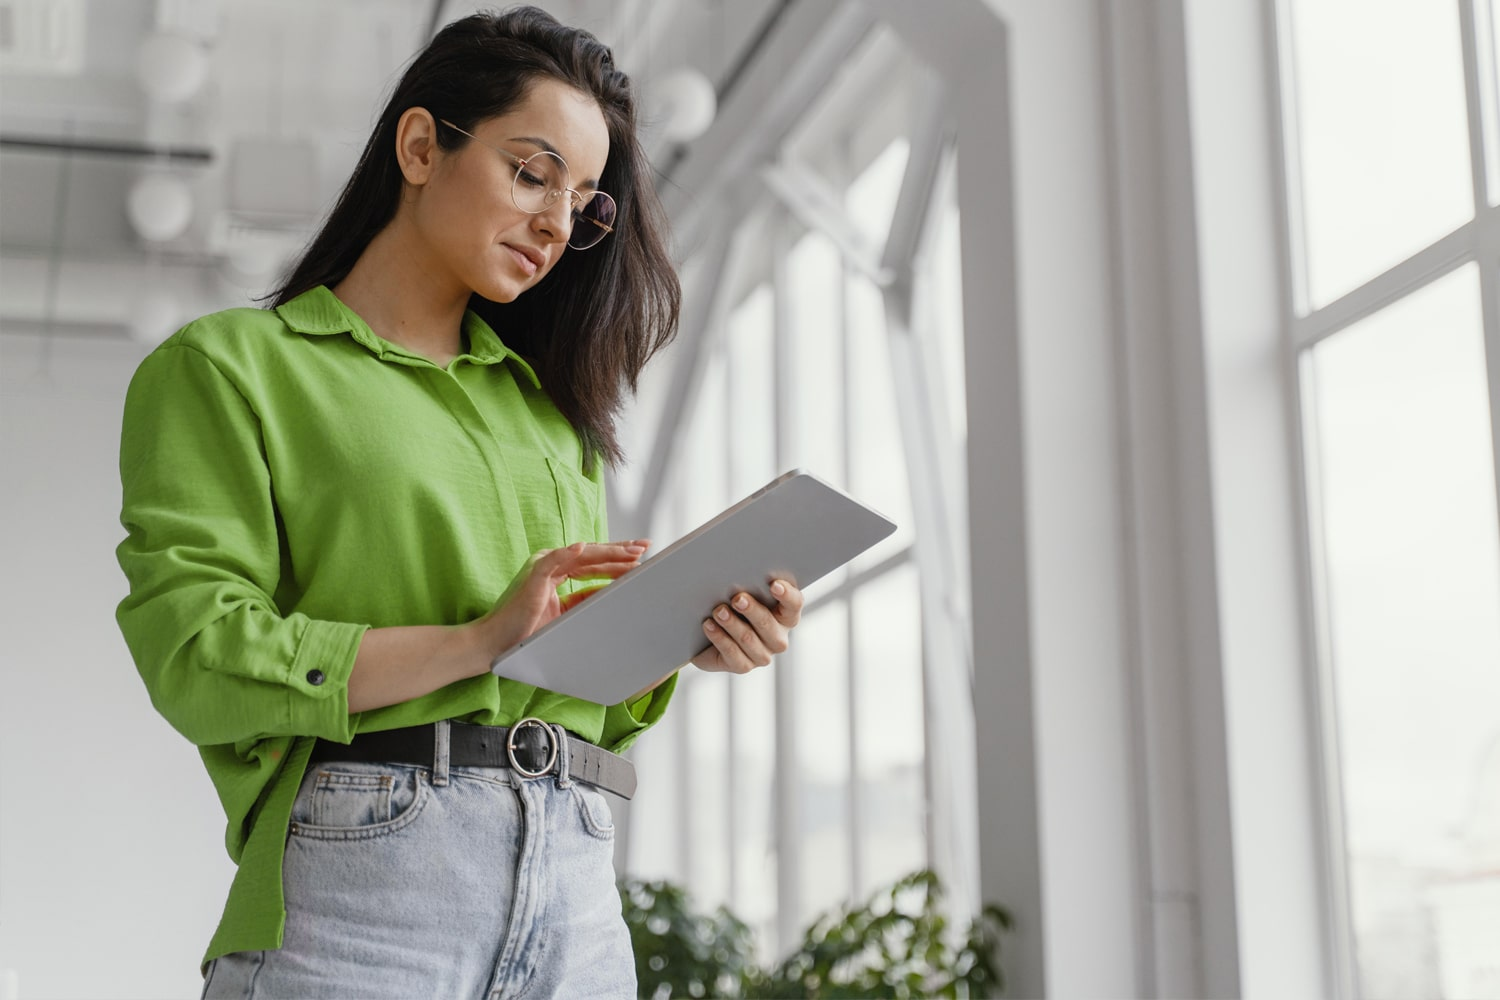 woman checking her ipad for information